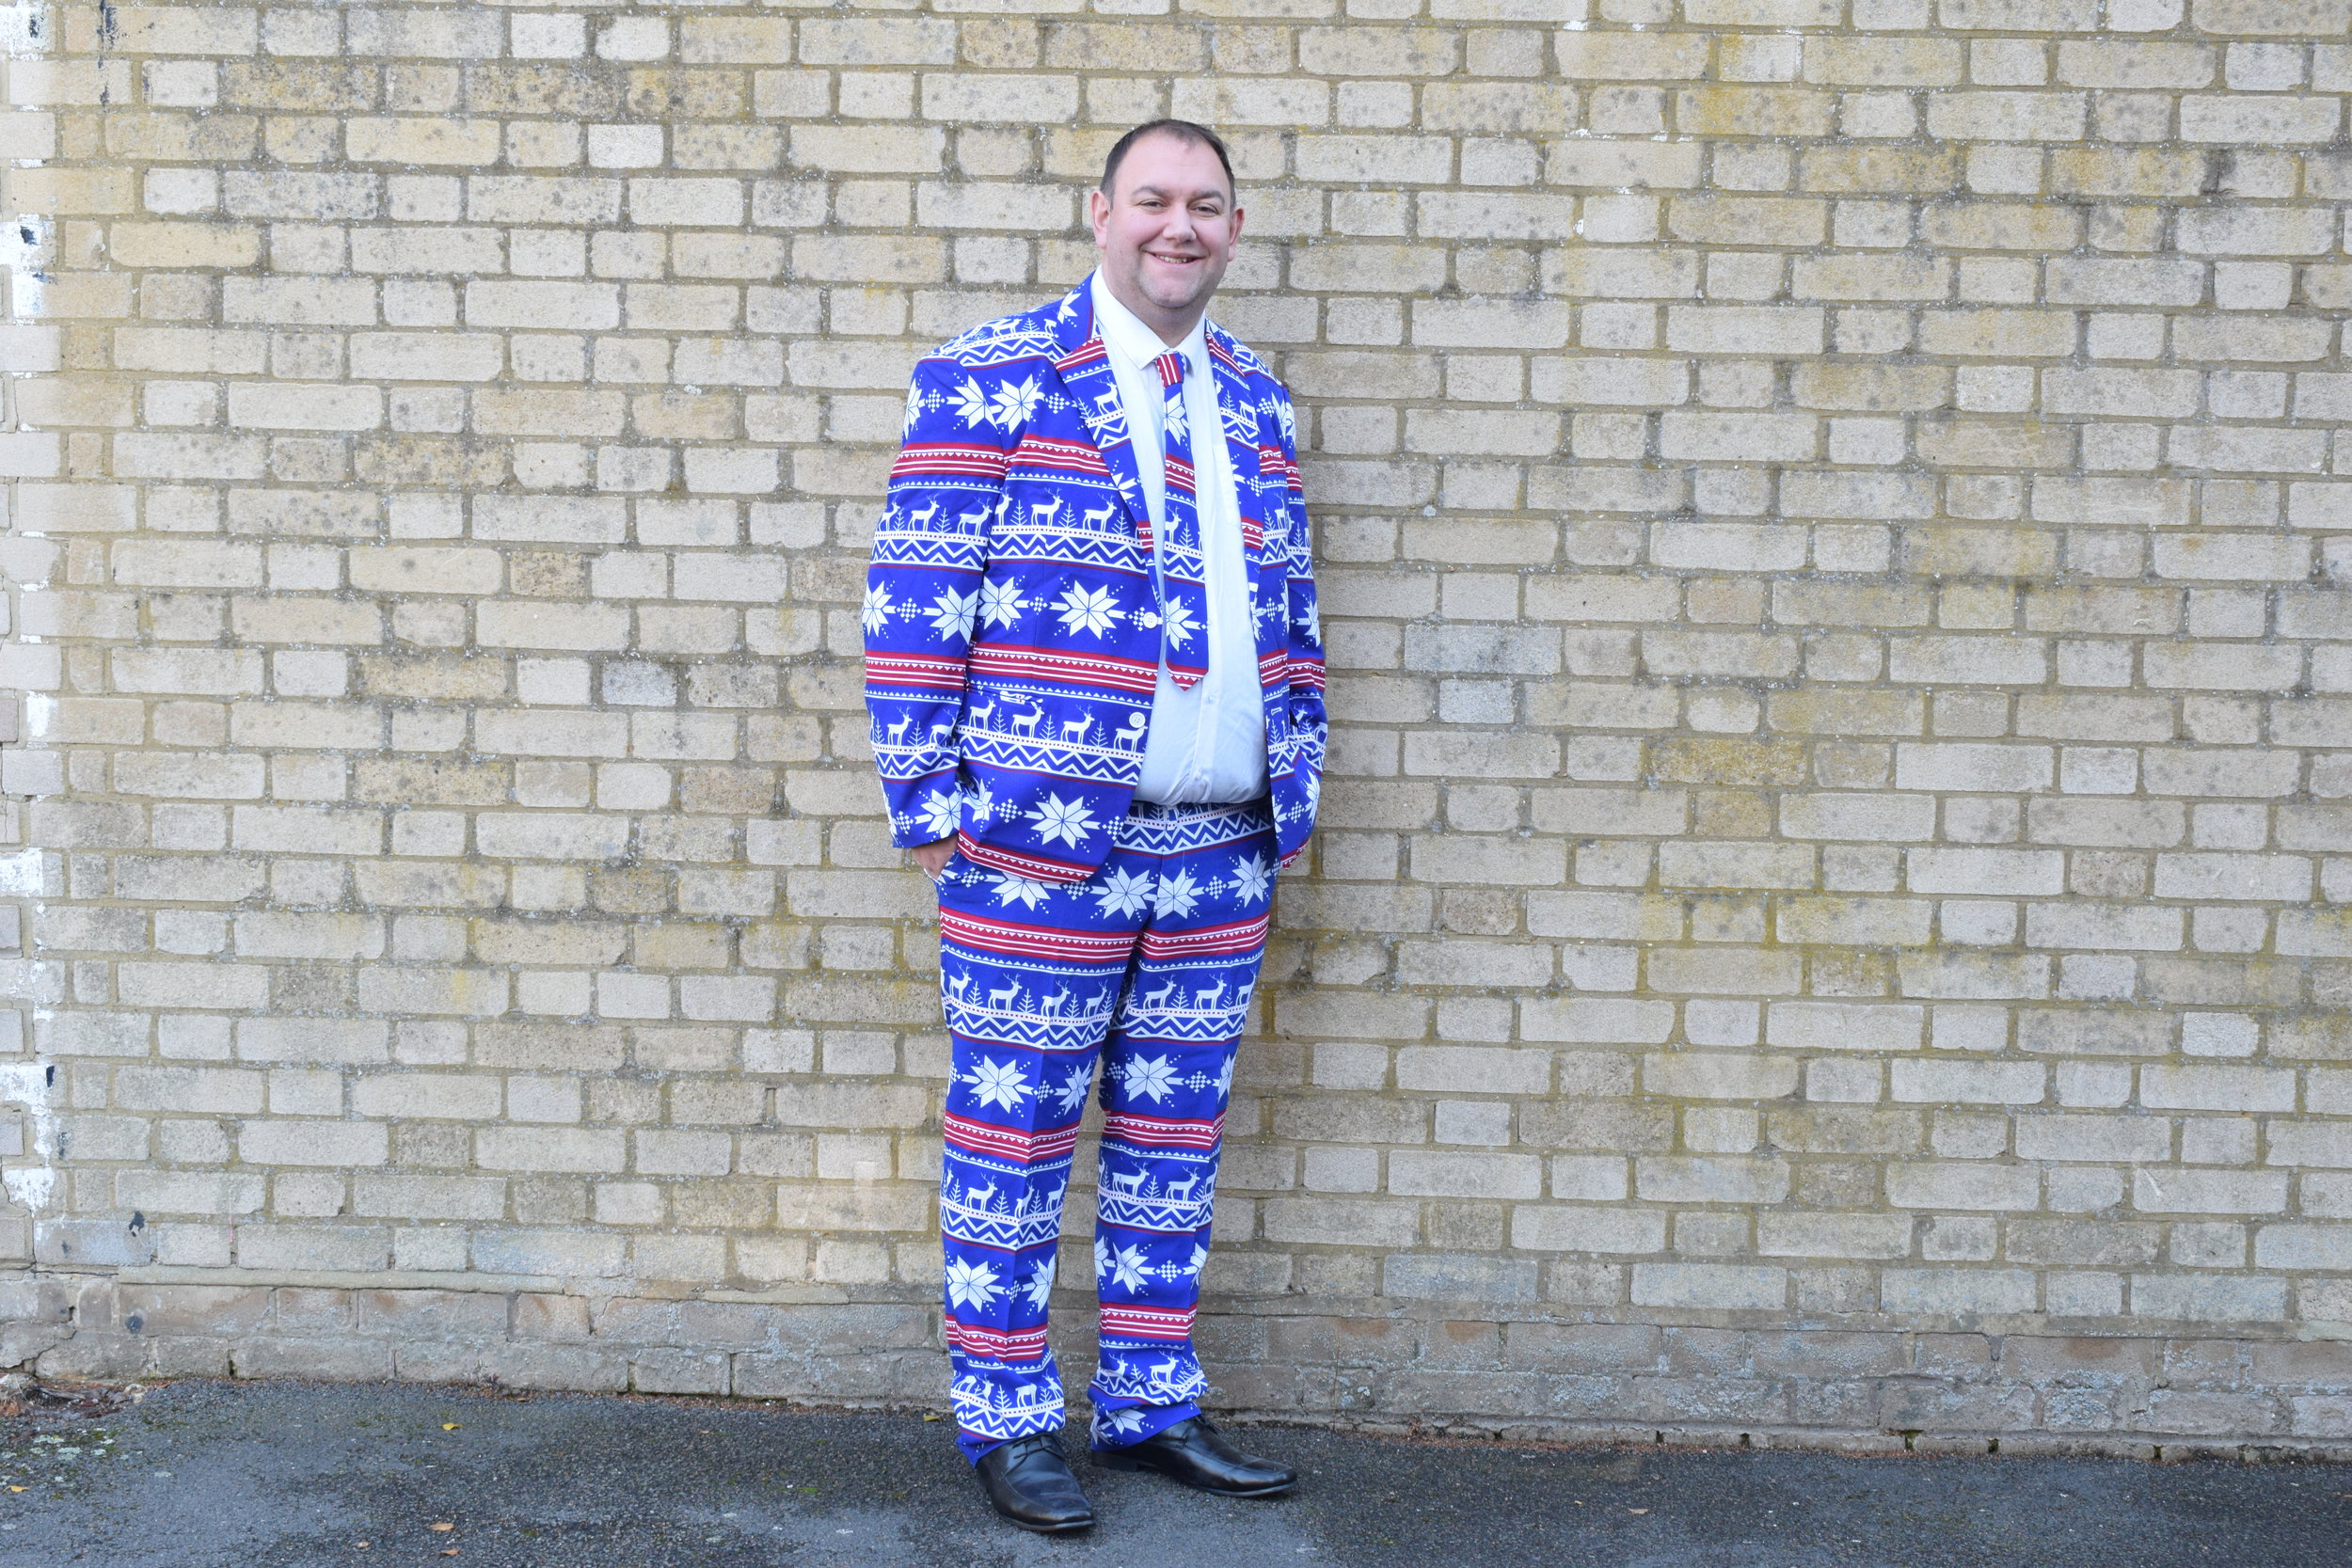 The Rudolph Christmas Suits for men from OppoSuits